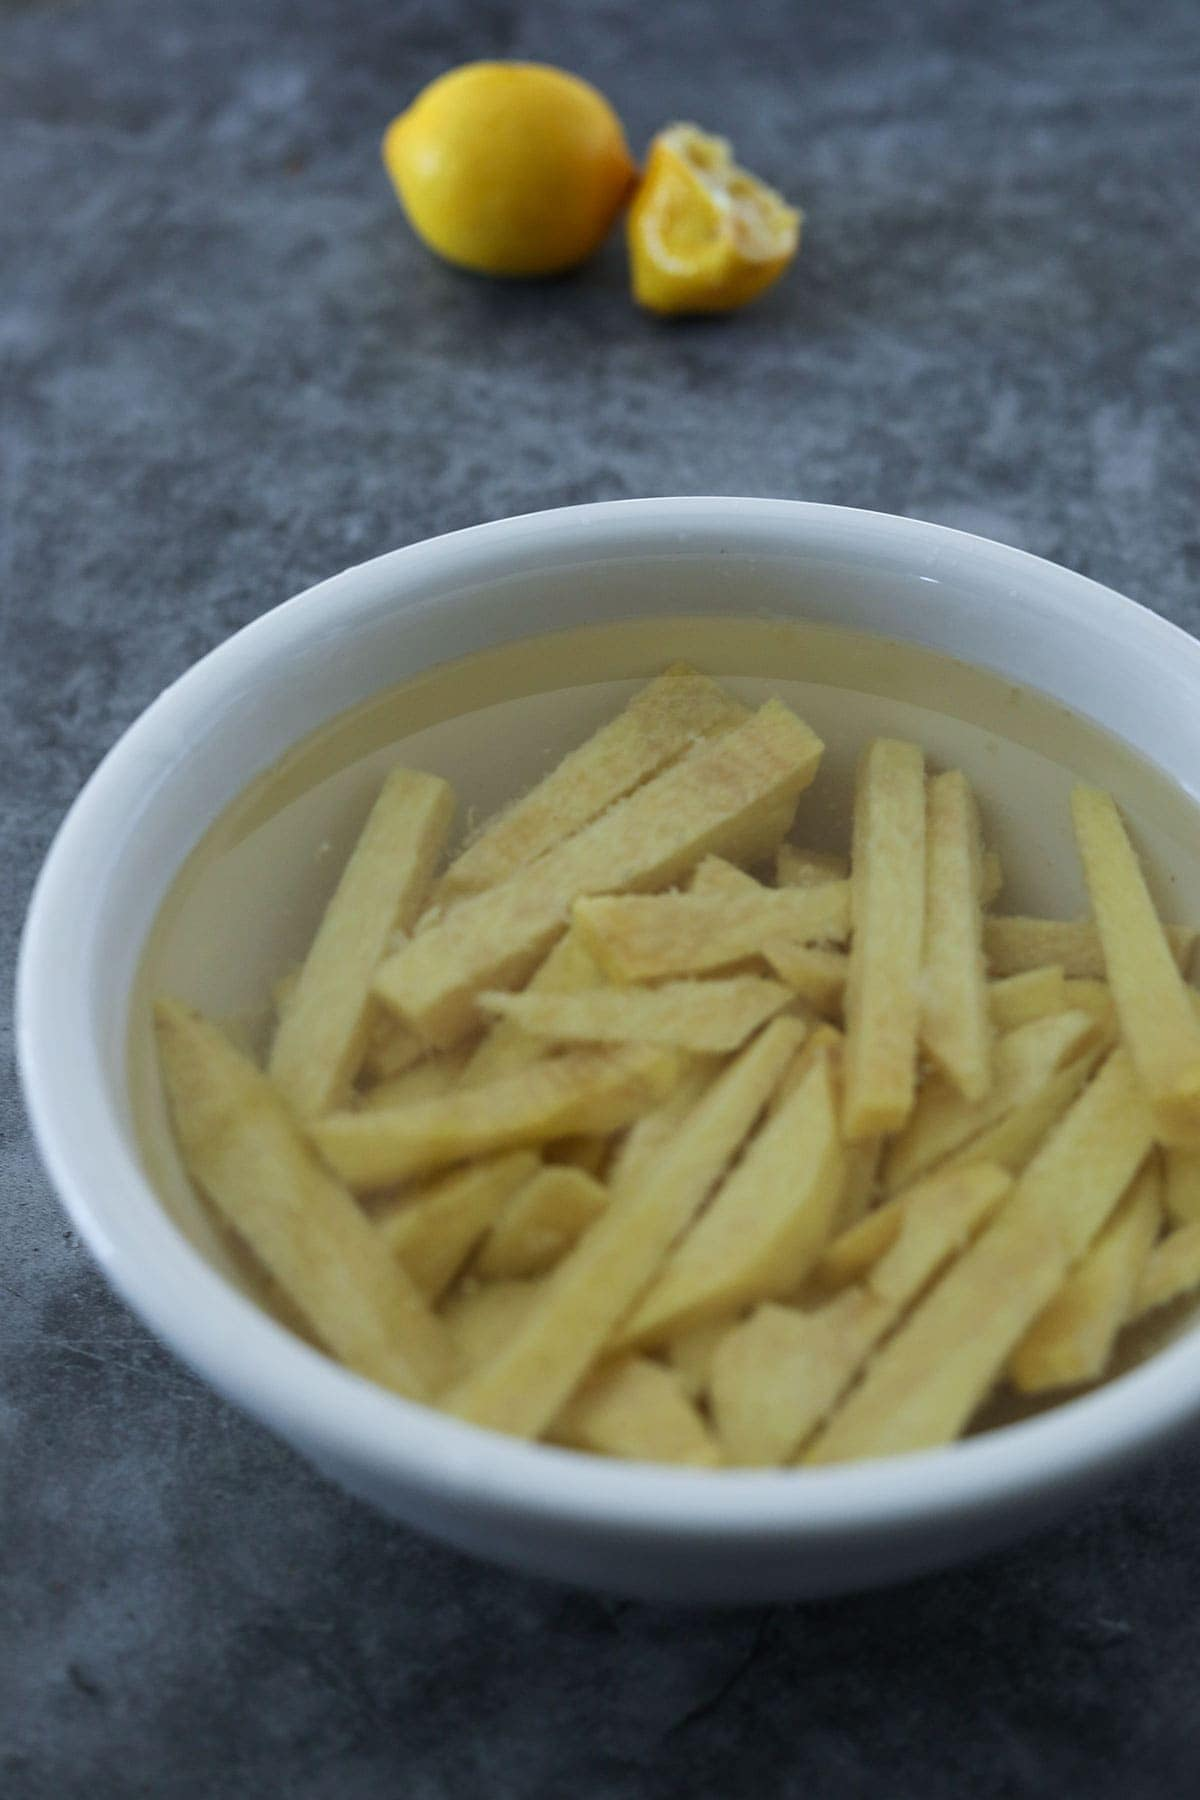 yam cut into match sticks for fries, soaking in lemon water